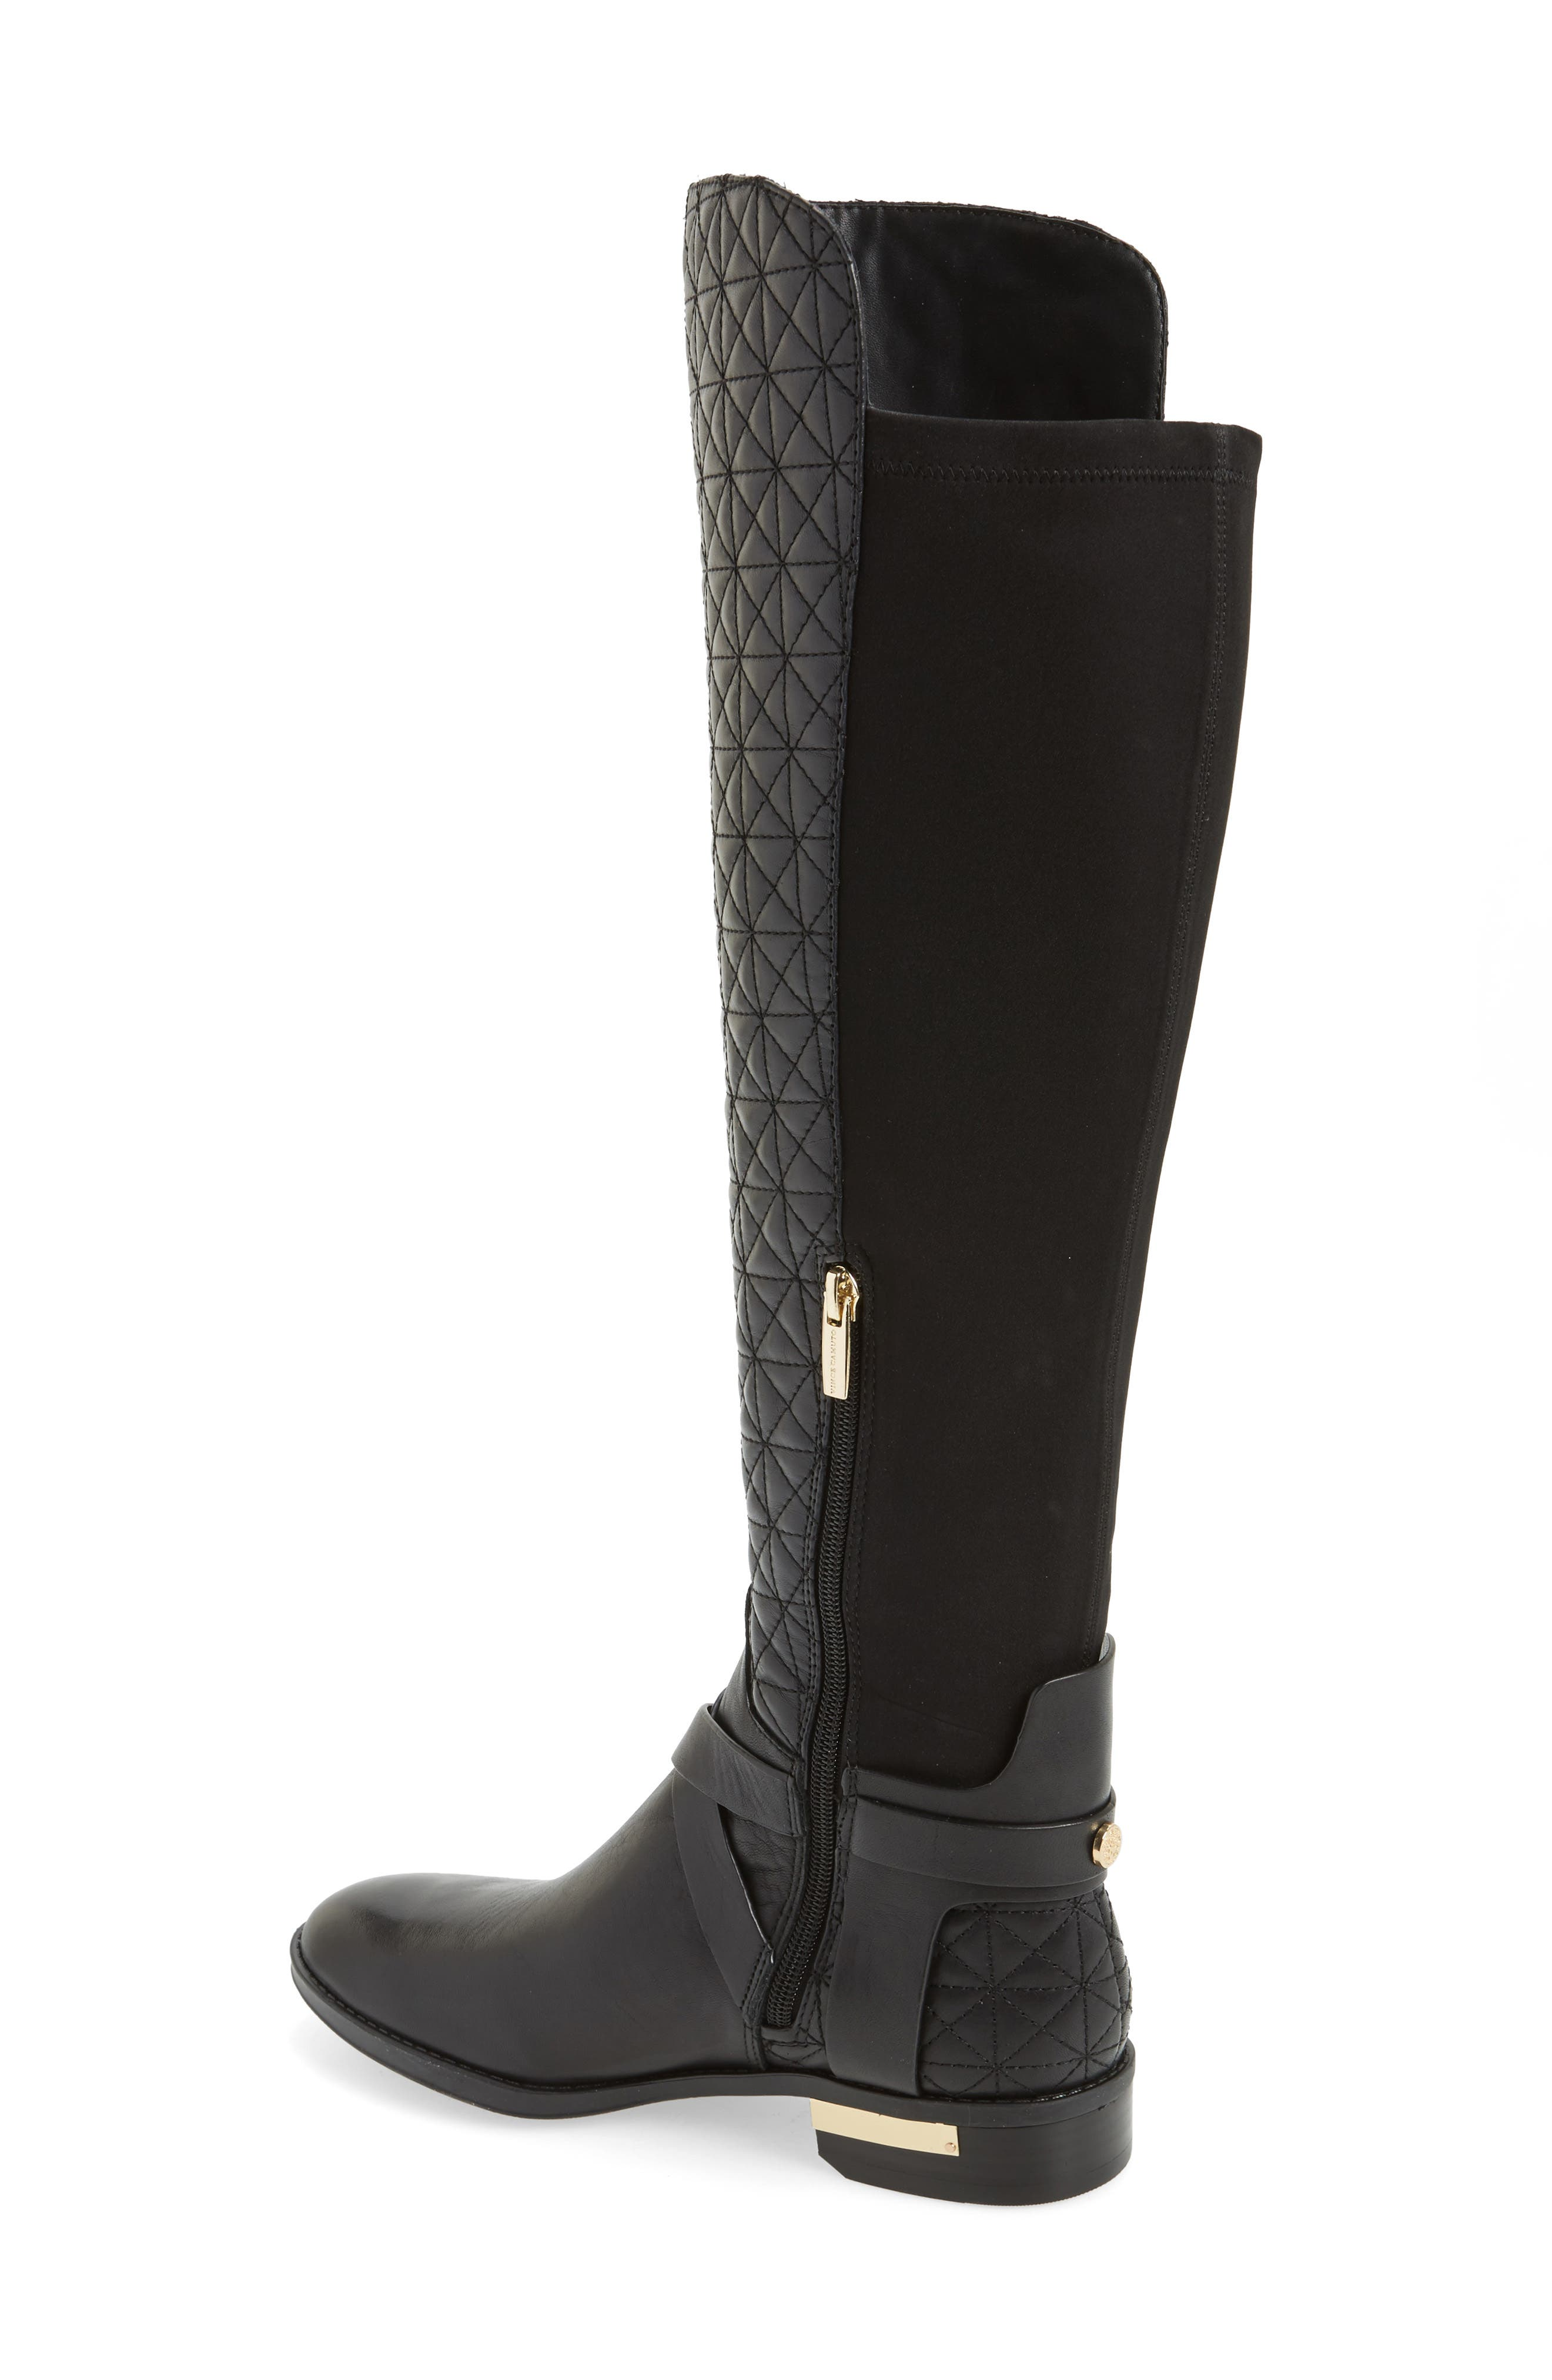 Patira Over the Knee Boot,                             Alternate thumbnail 2, color,                             Black Leather Wide Calf